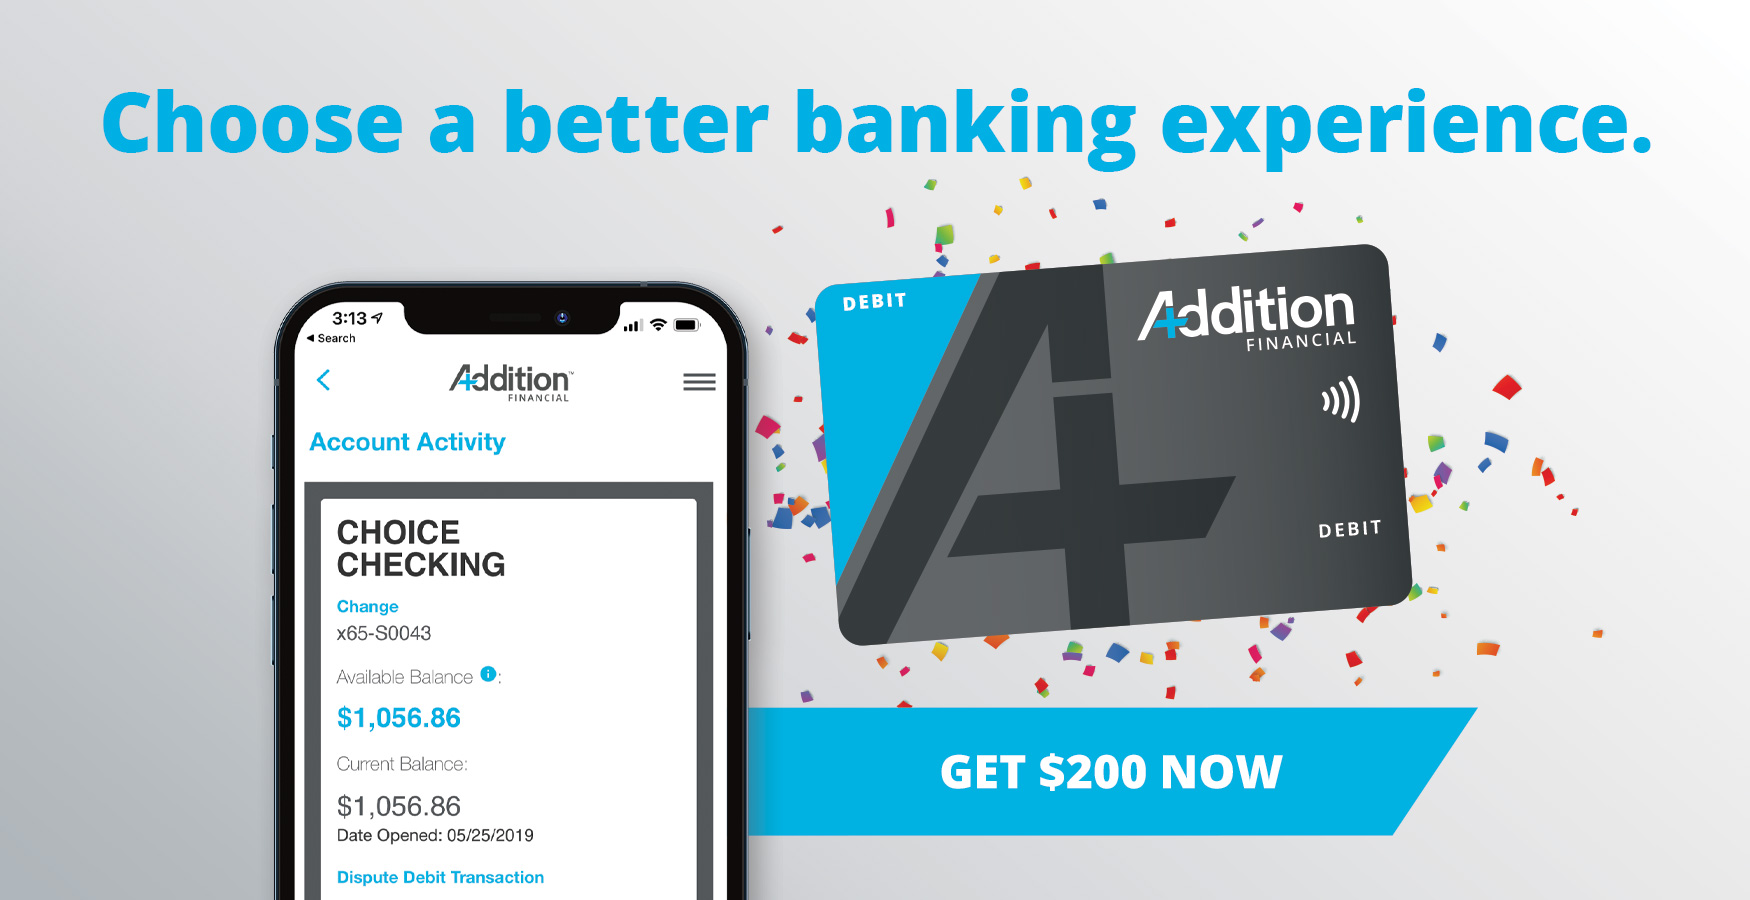 Choose a better banking experience and get $200!